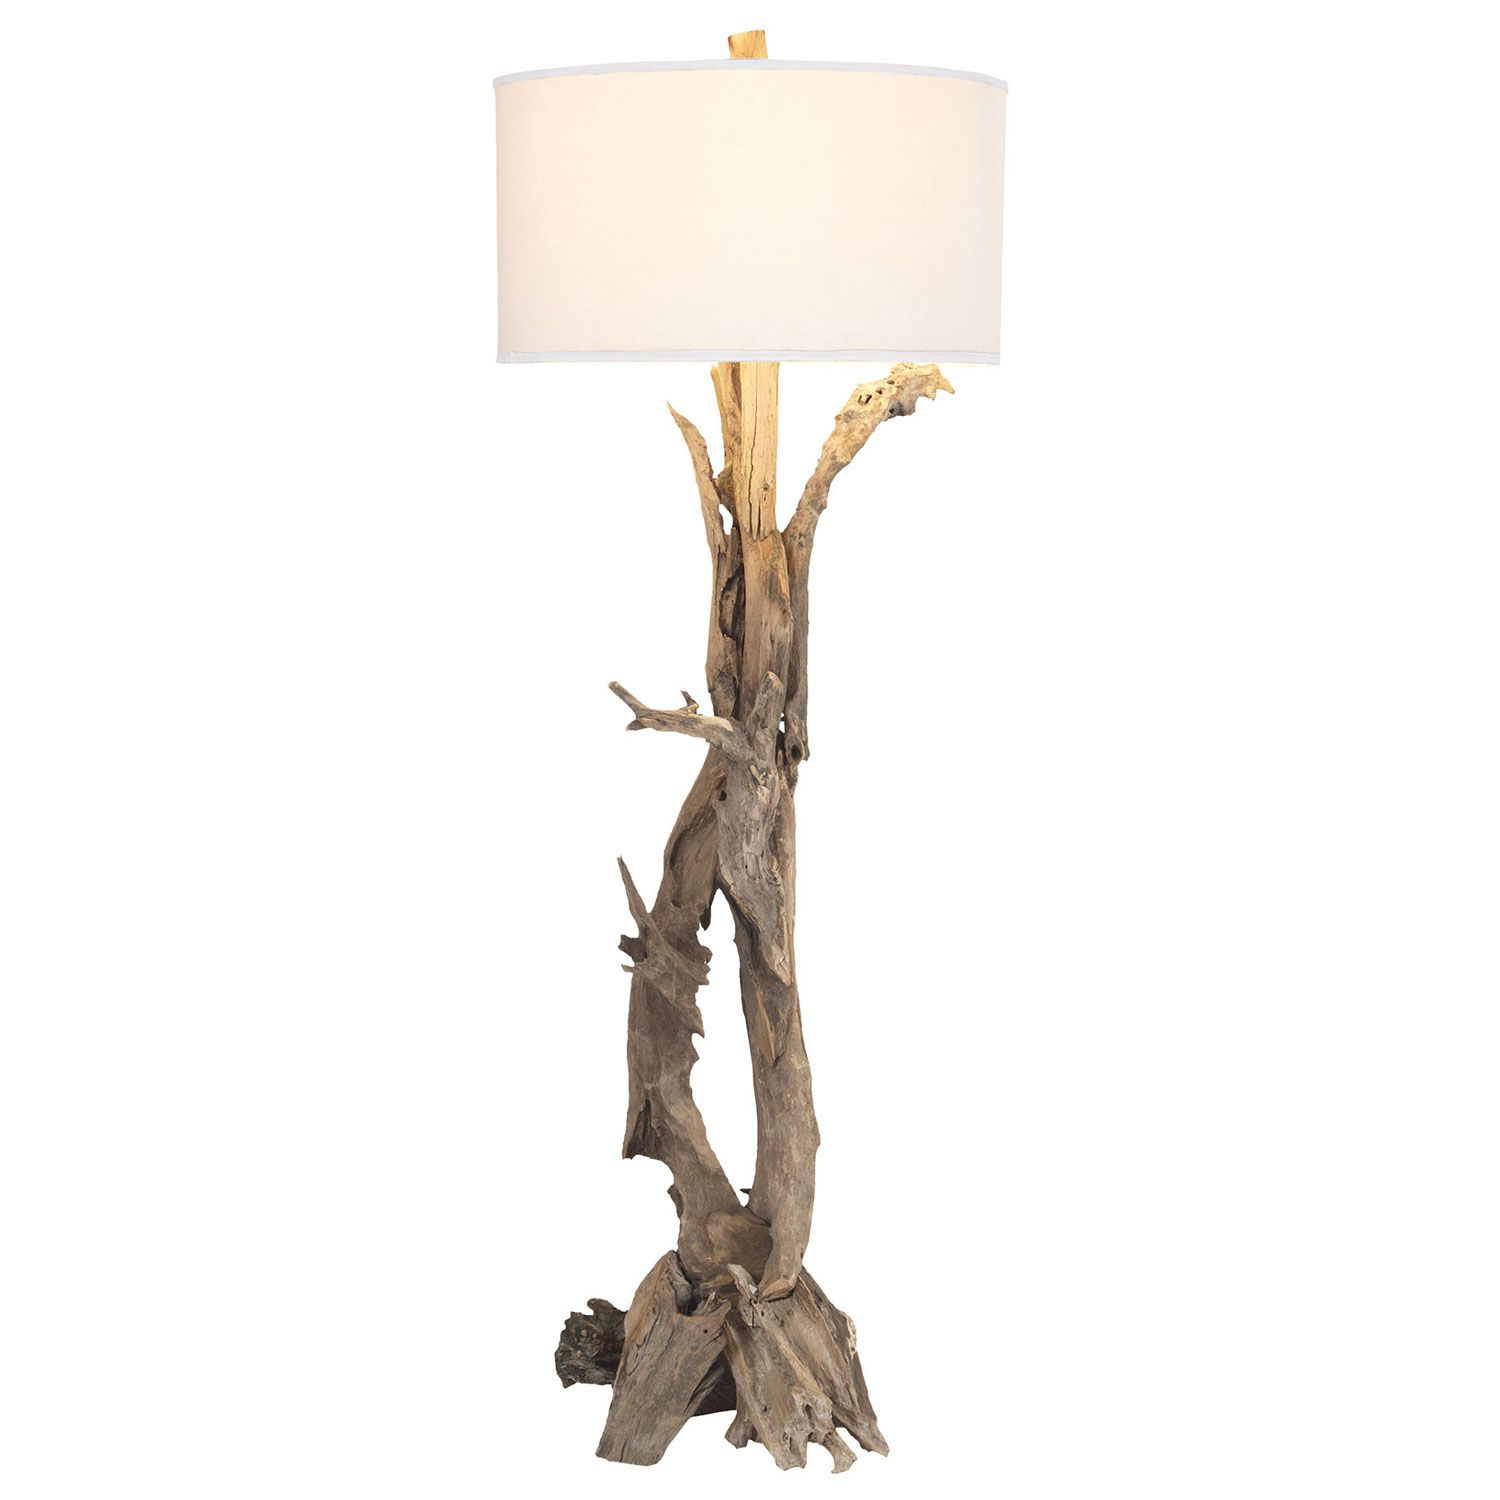 The Hounslow Heath Floor Lamp Presents A Contemporary Update To Nature Inspired Design Beneath Simple White Shade Twisted Teak Root Branches Offer